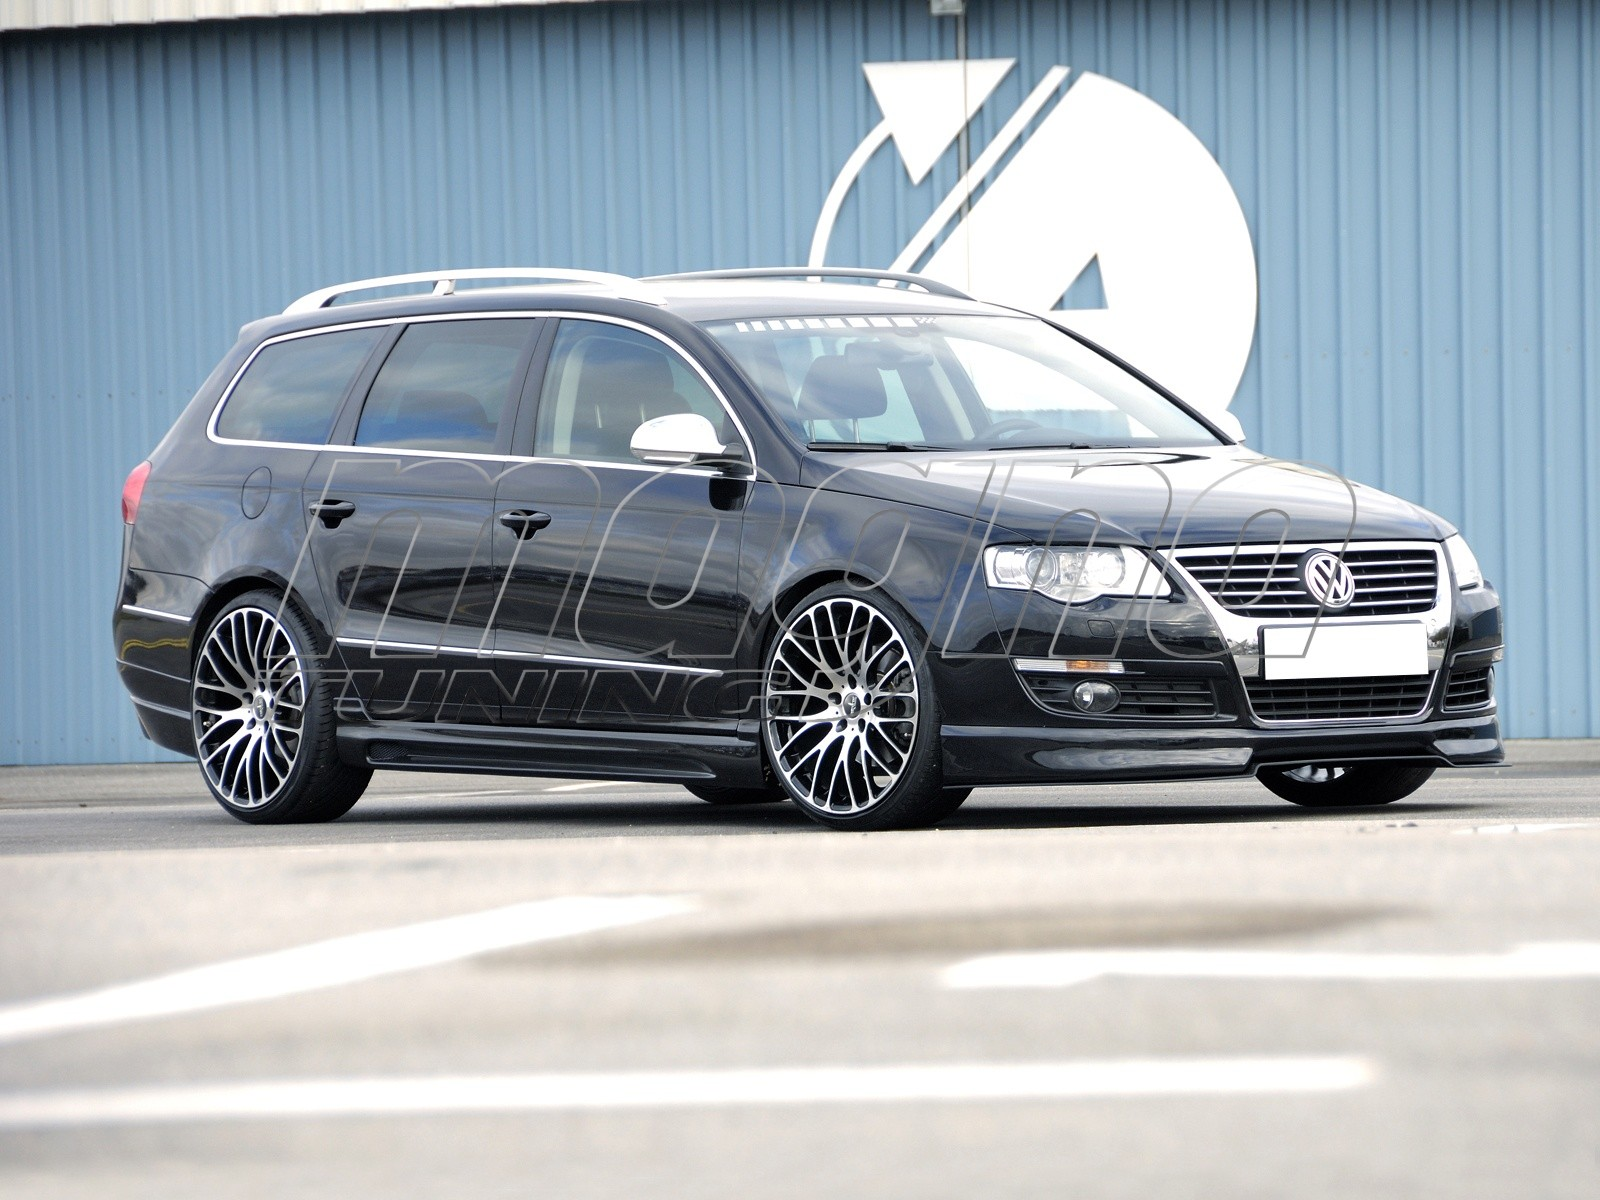 vw passat b6 3c variant body kit. Black Bedroom Furniture Sets. Home Design Ideas